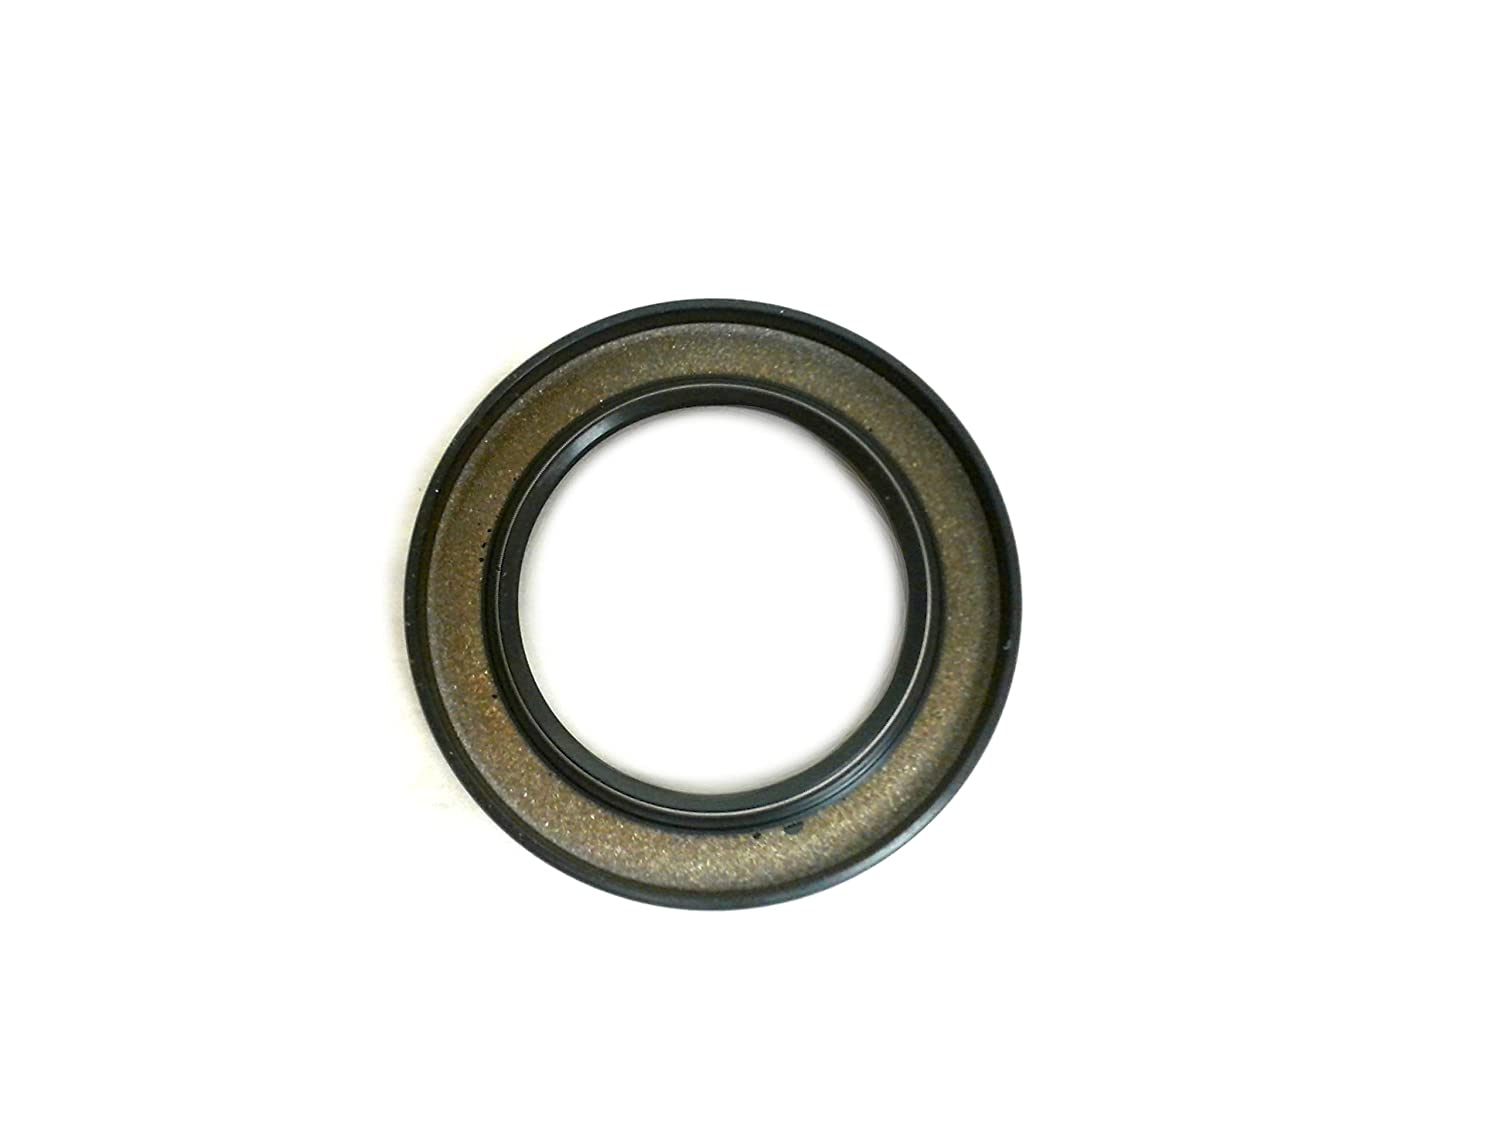 59 X 88 X 8 X 13.5 Replacement to Suzuki # 09283-59001 Rear Differential Seal